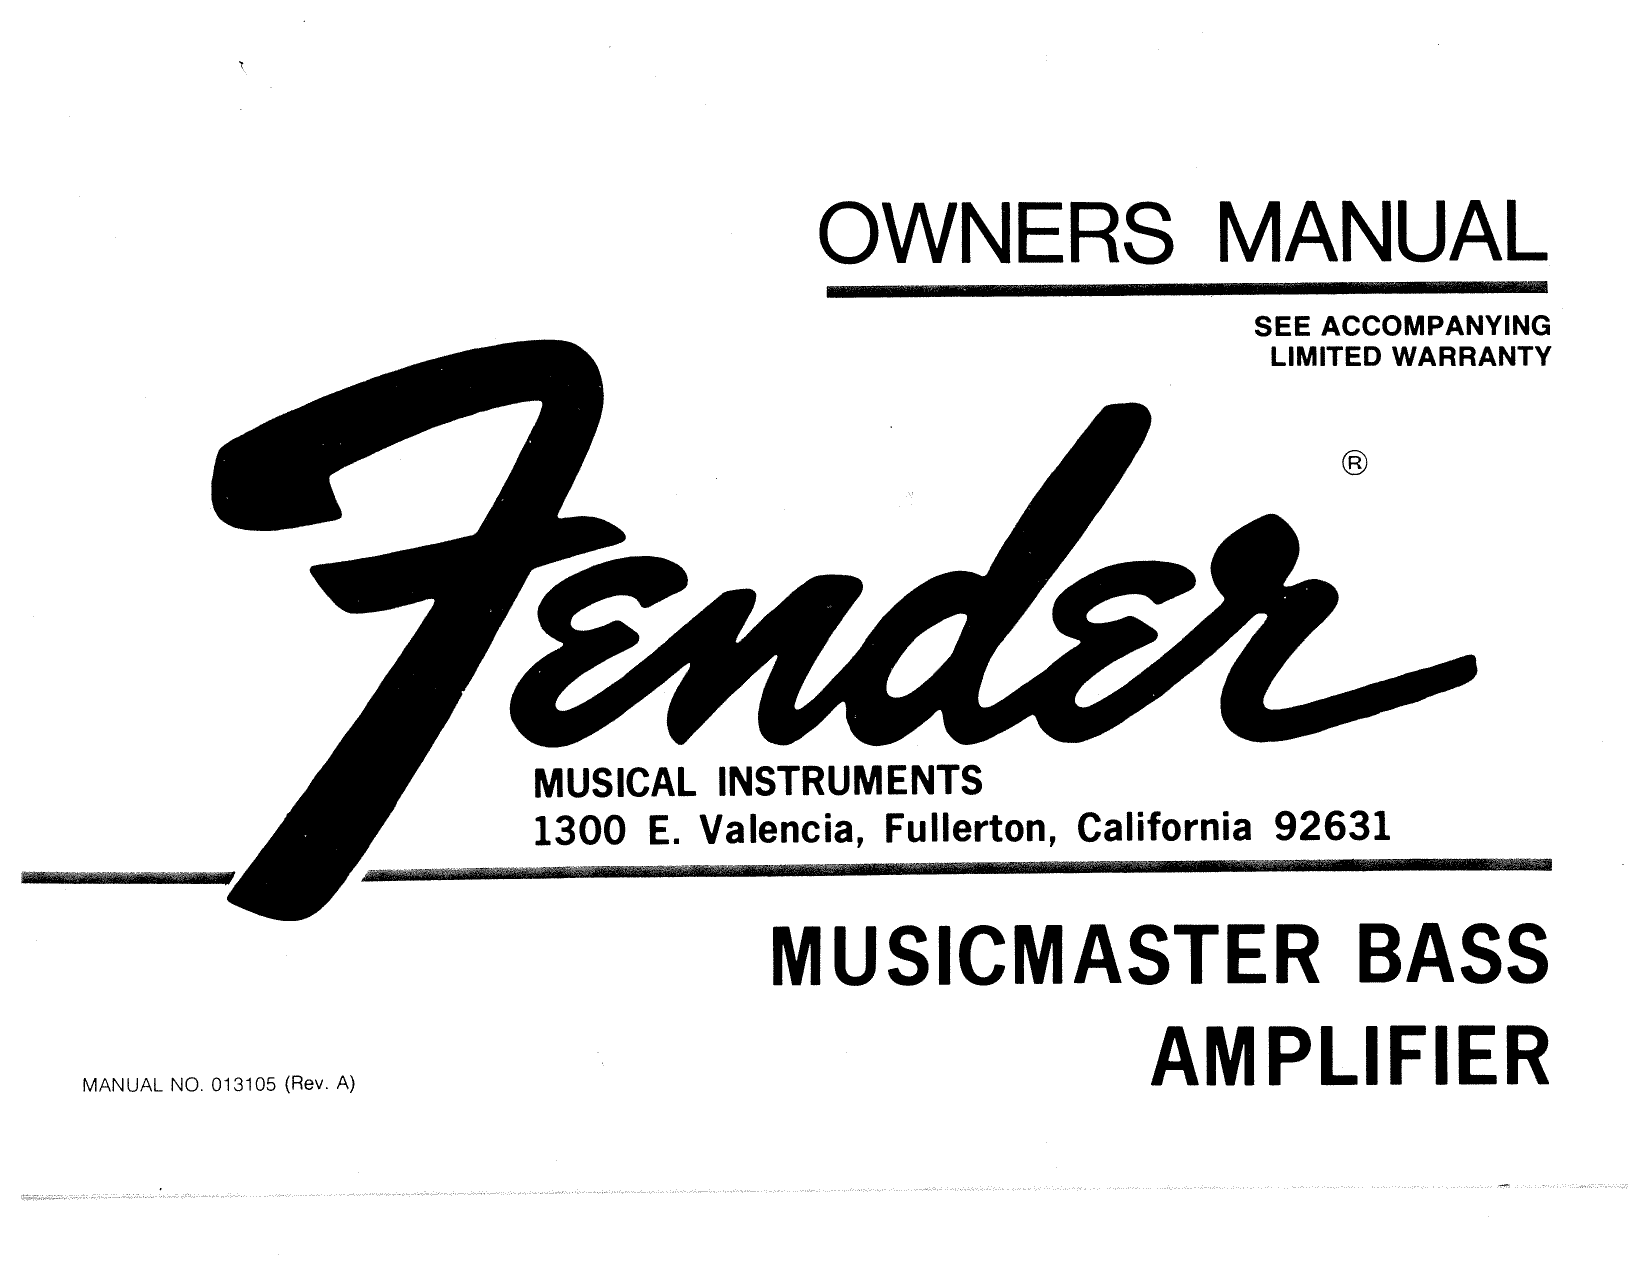 Fender Musicmaster Bass Amplifier (1977) Owner's manual